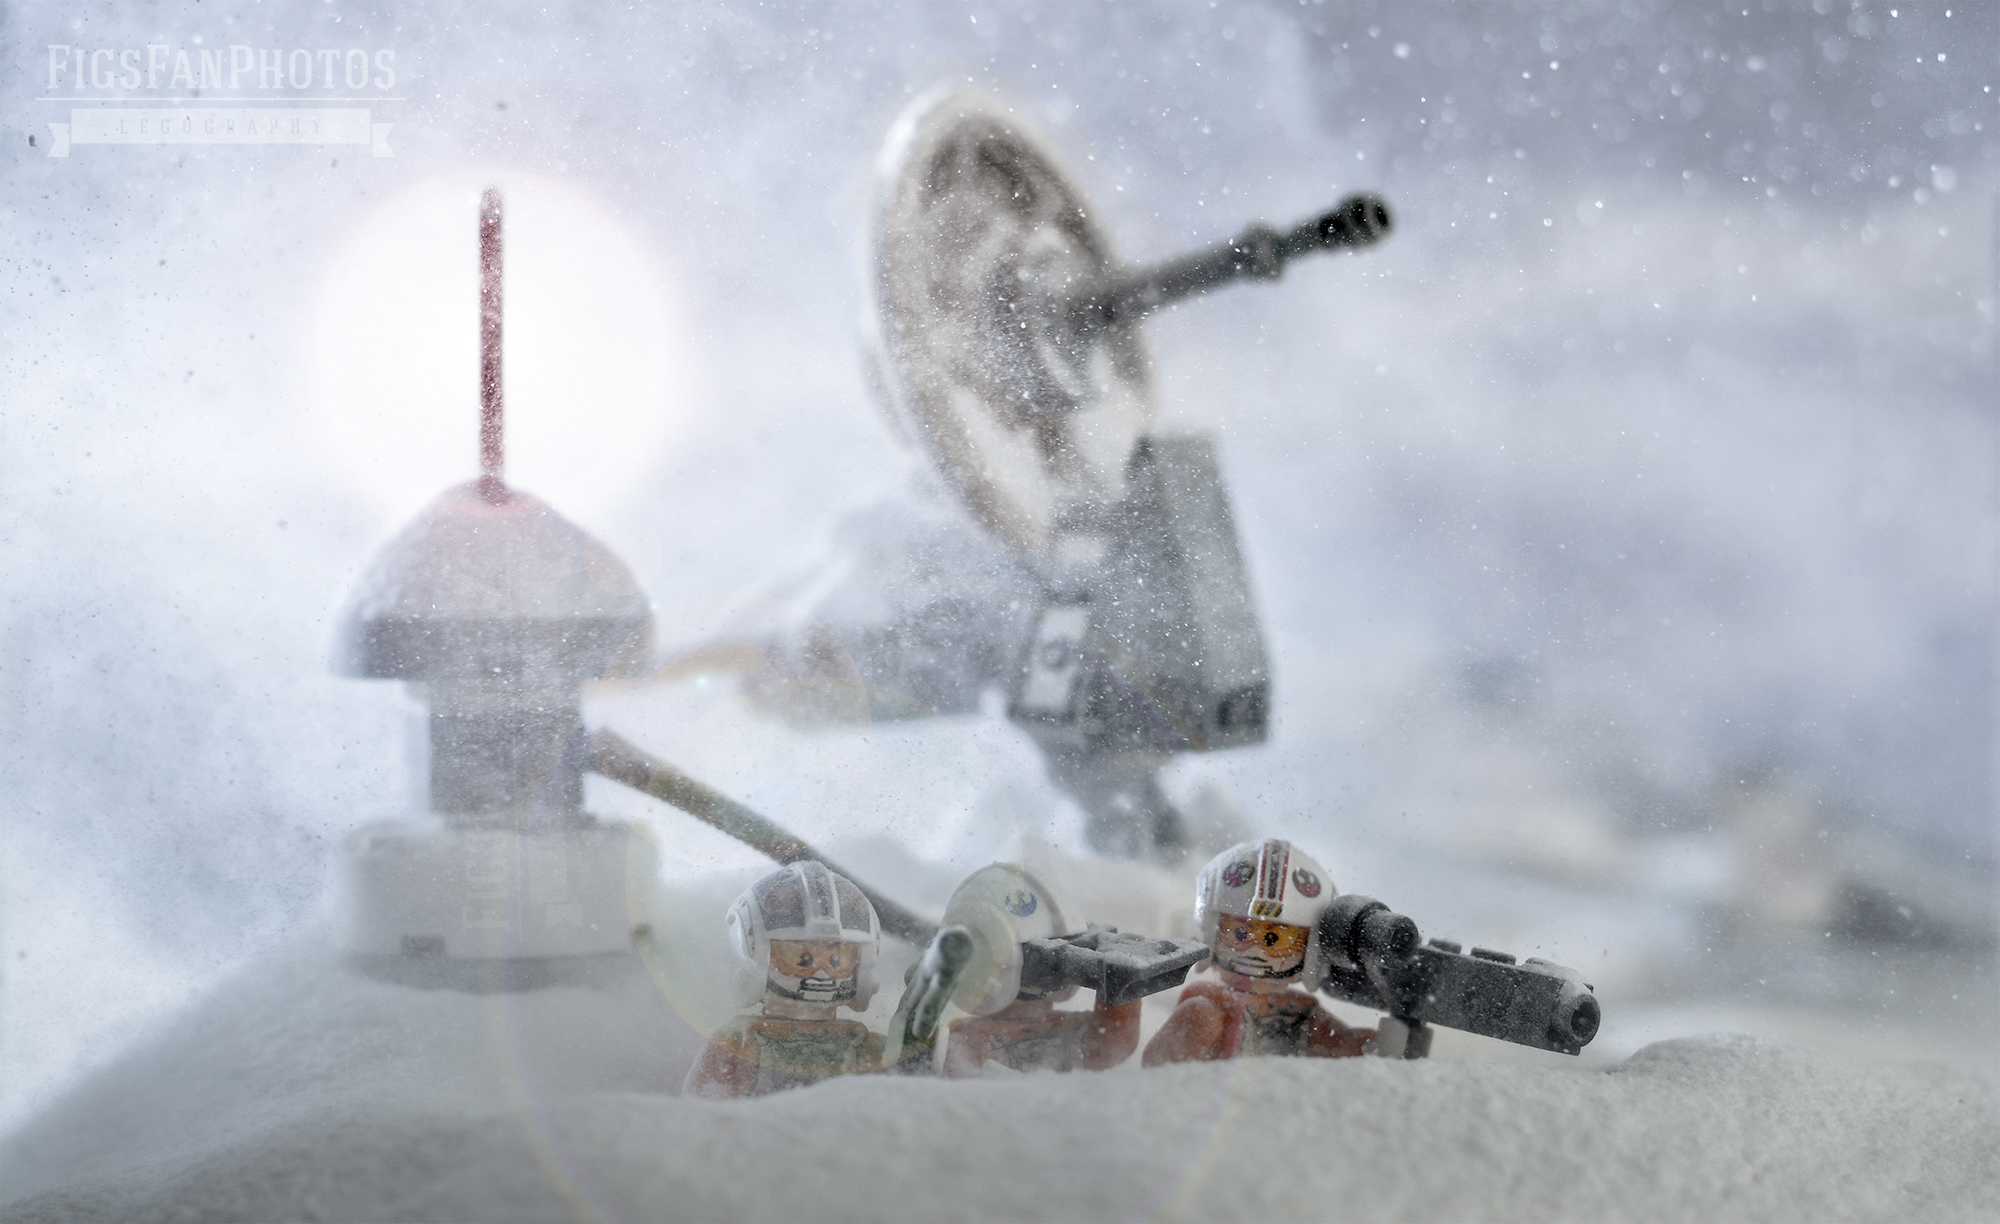 benedek_lampert_hoth_watch_k_j.jpg